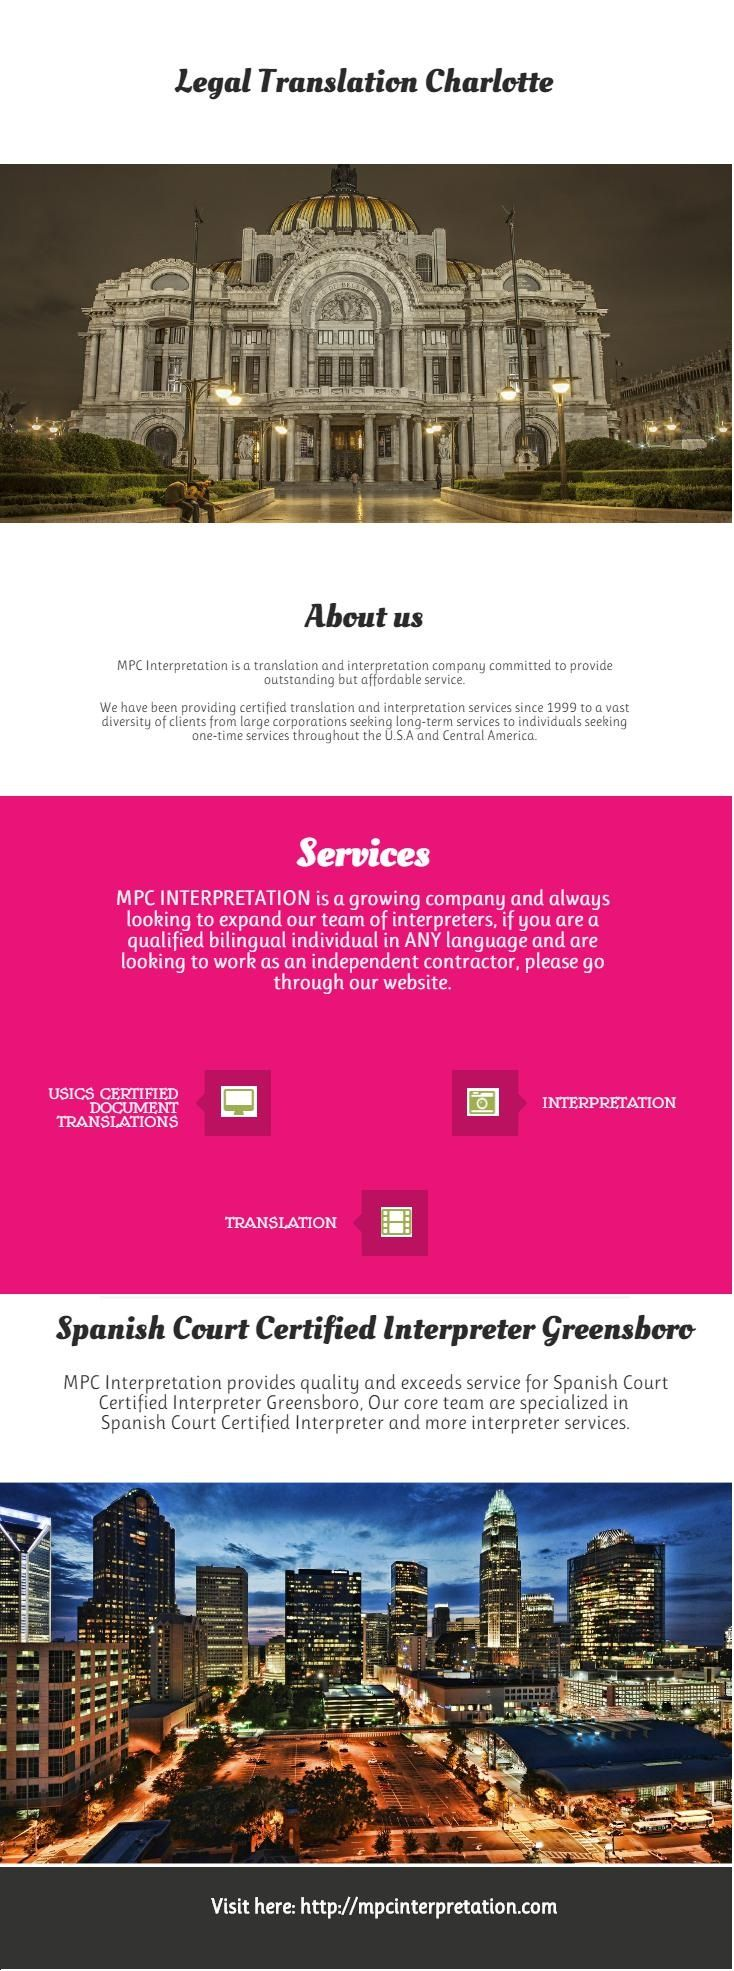 We have Spanish certified translators based out of Concord